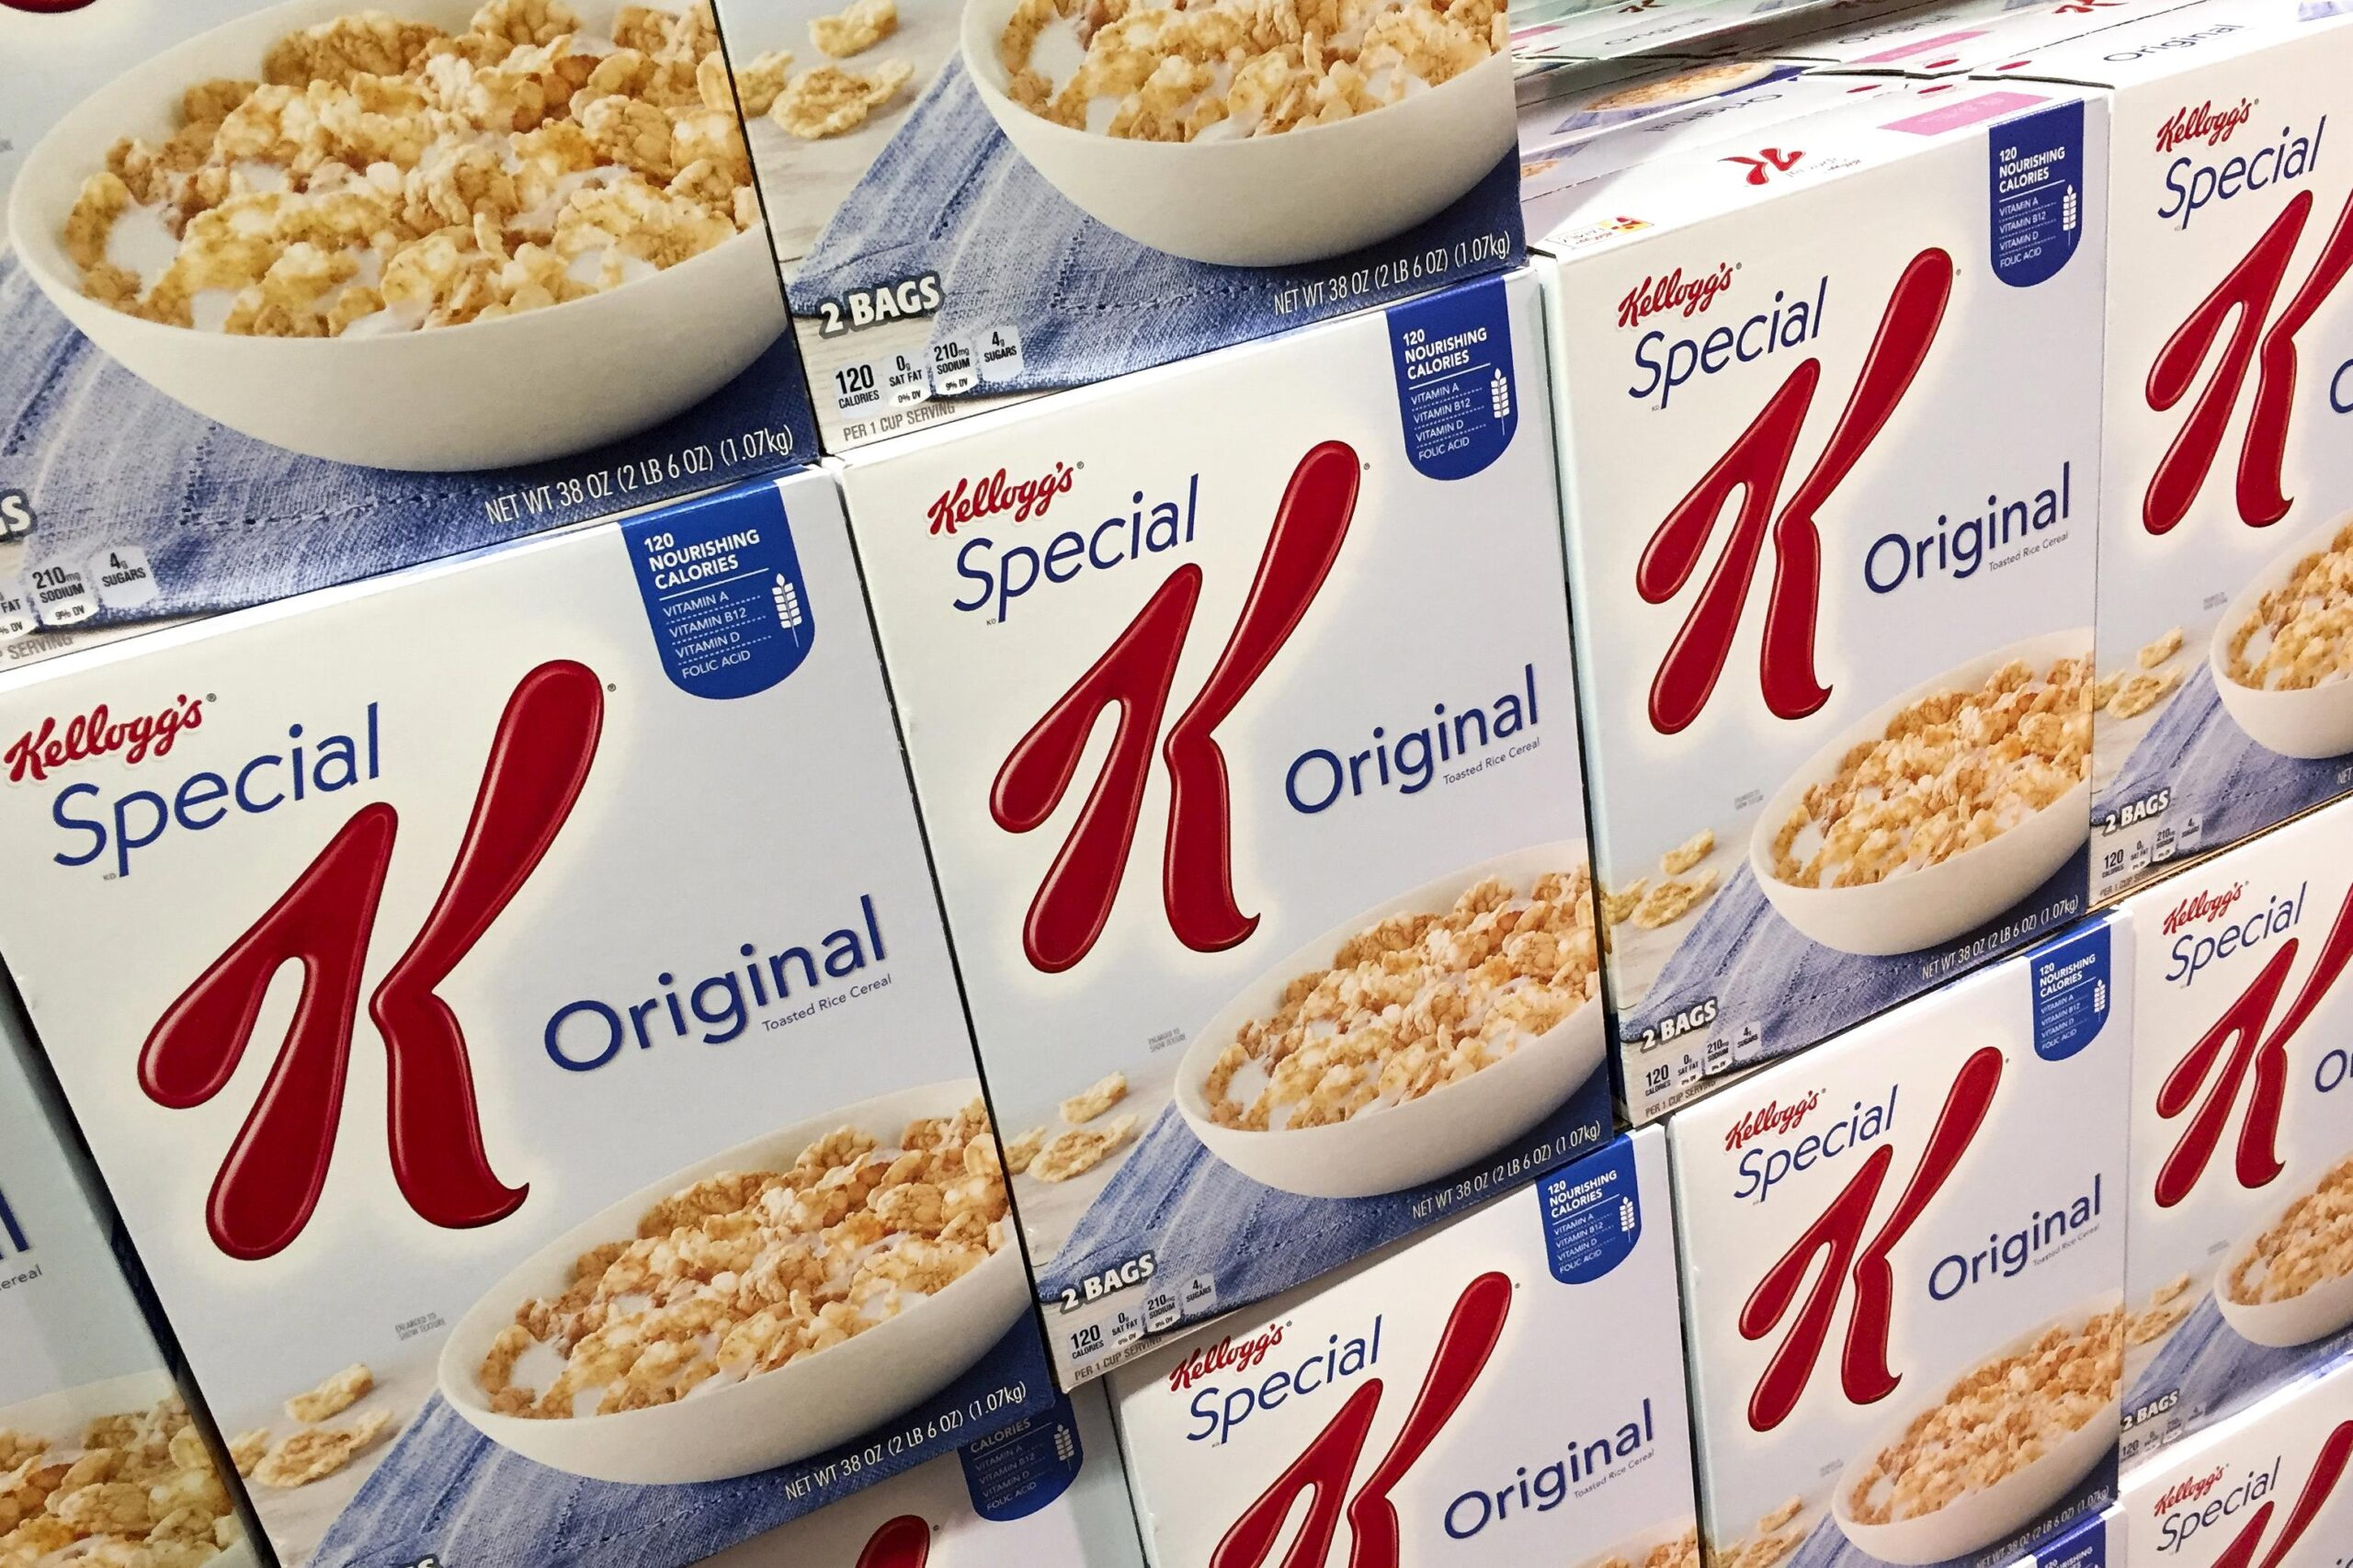 Let's hope the new look Kementari is no longer a cereal offender.